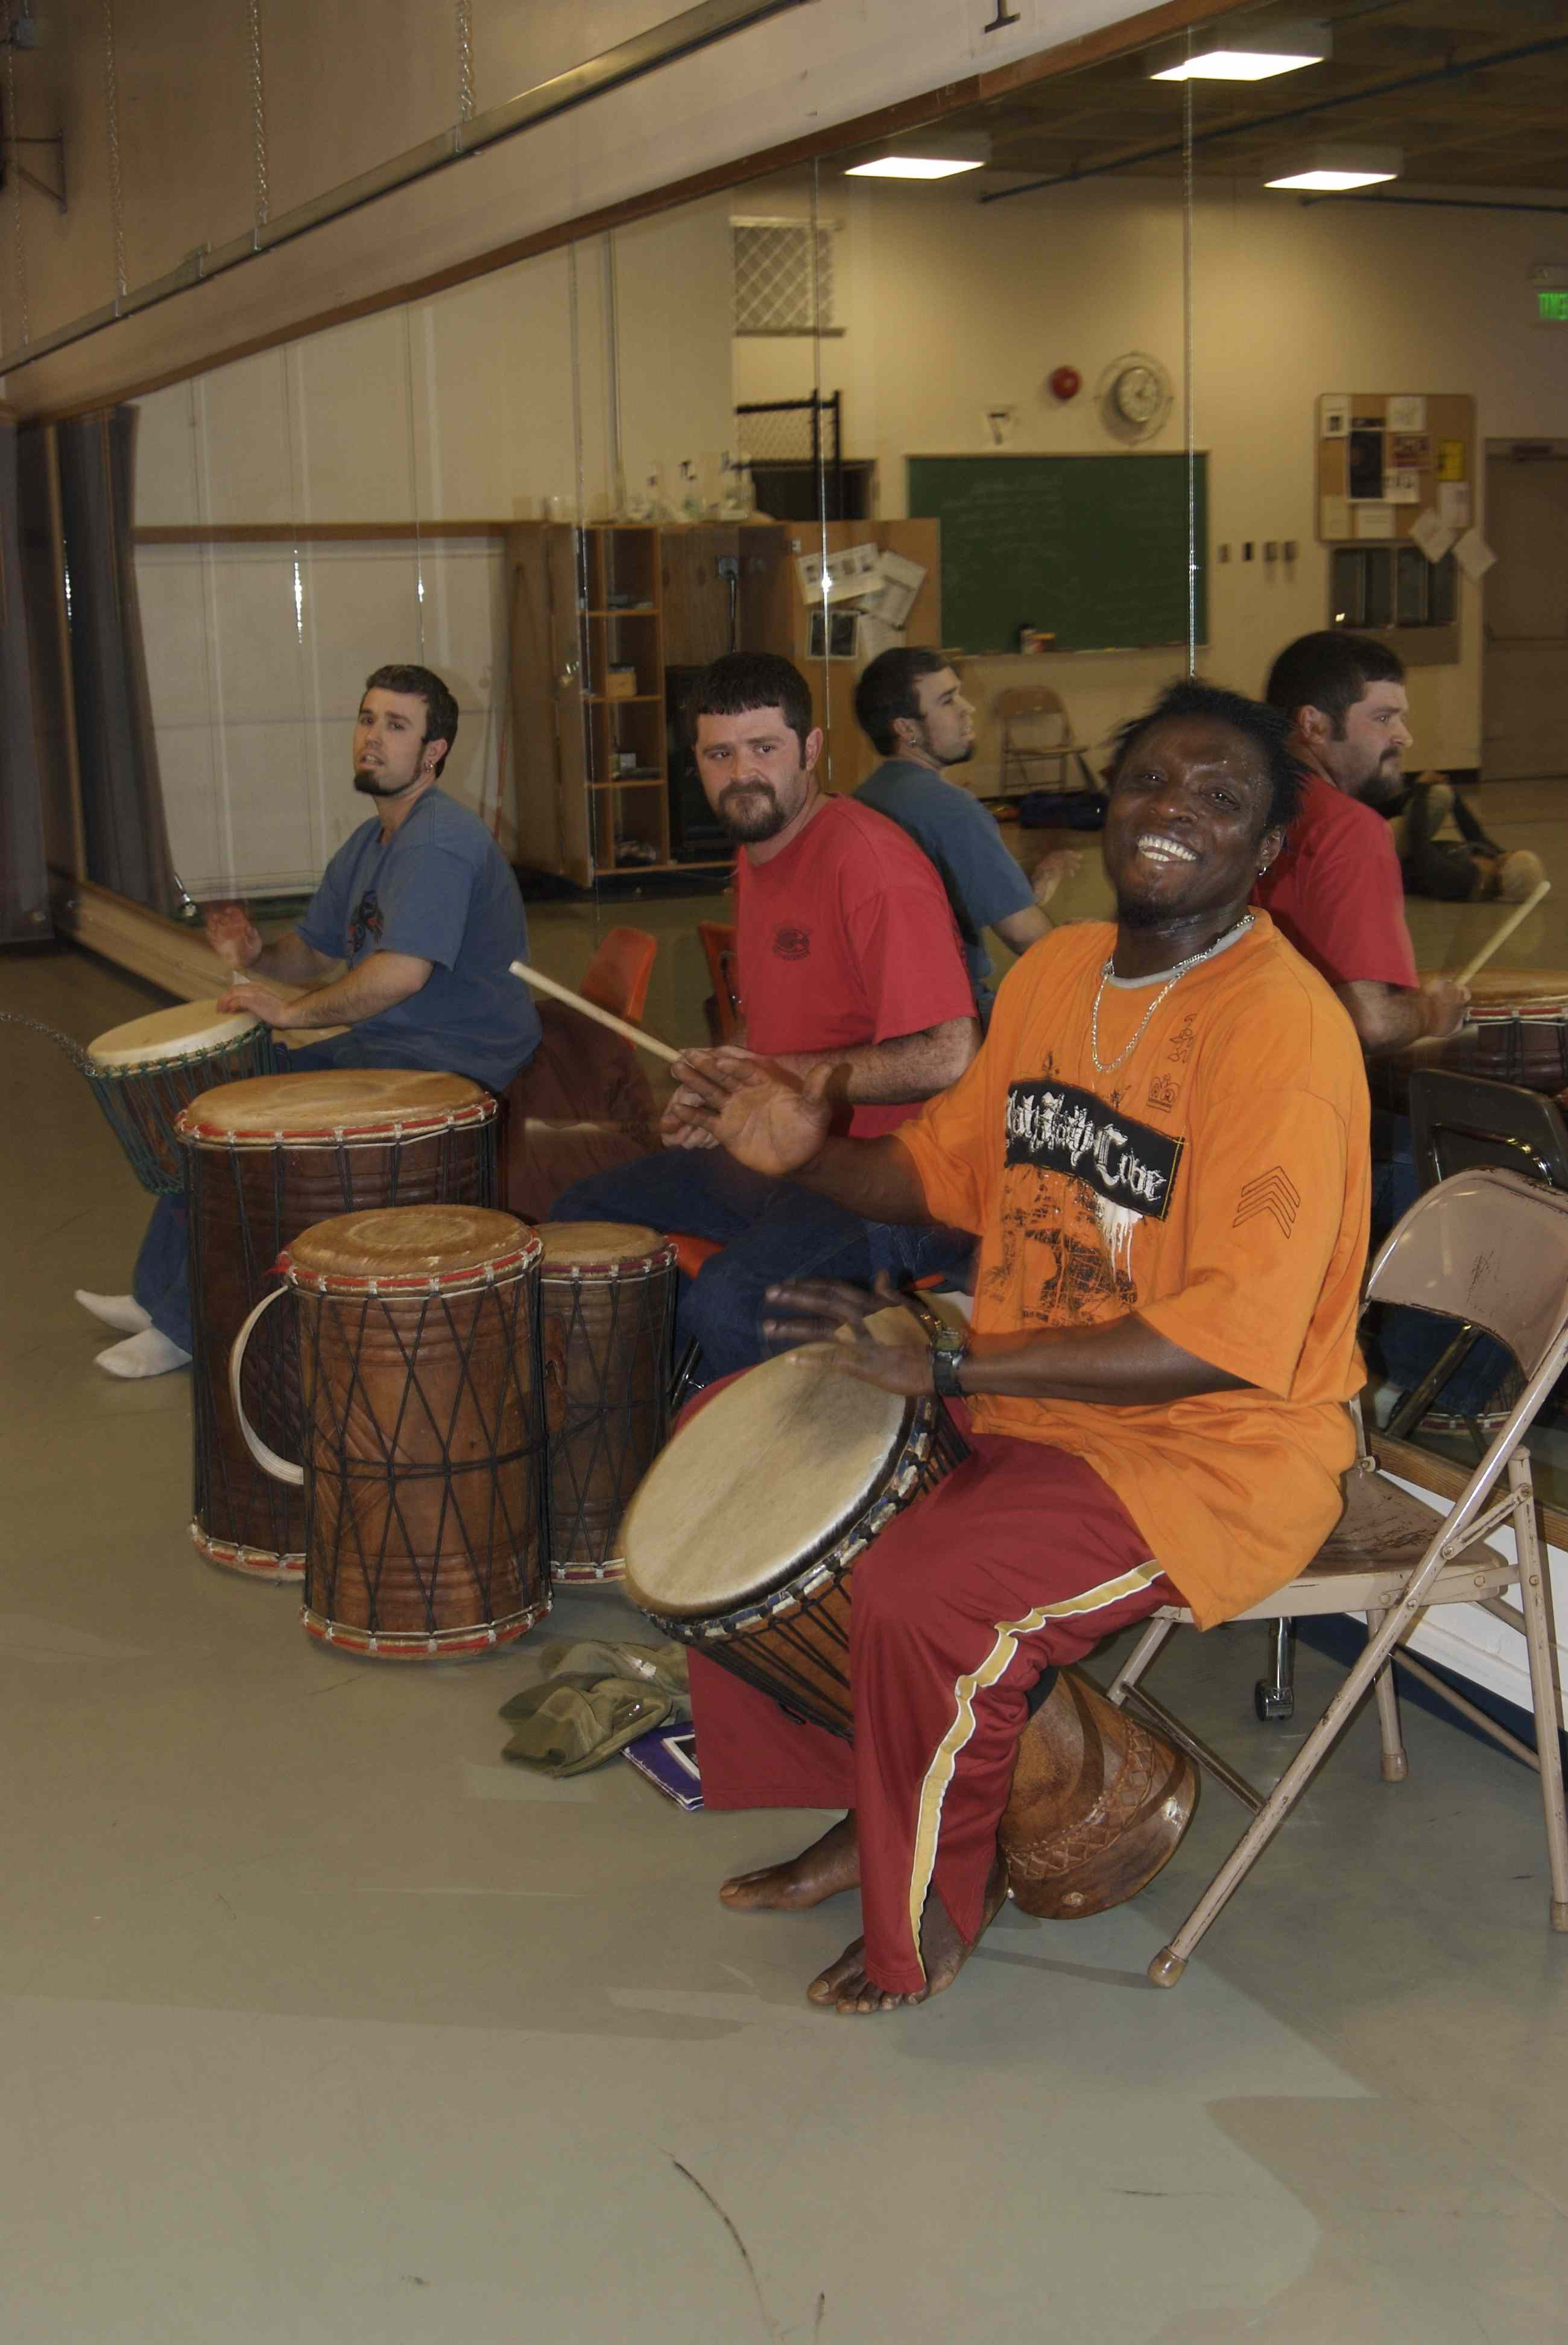 Many of you already know that drumming has many positive benefits, but in considering the tumultuous times we are in it seems important to count all the ways!